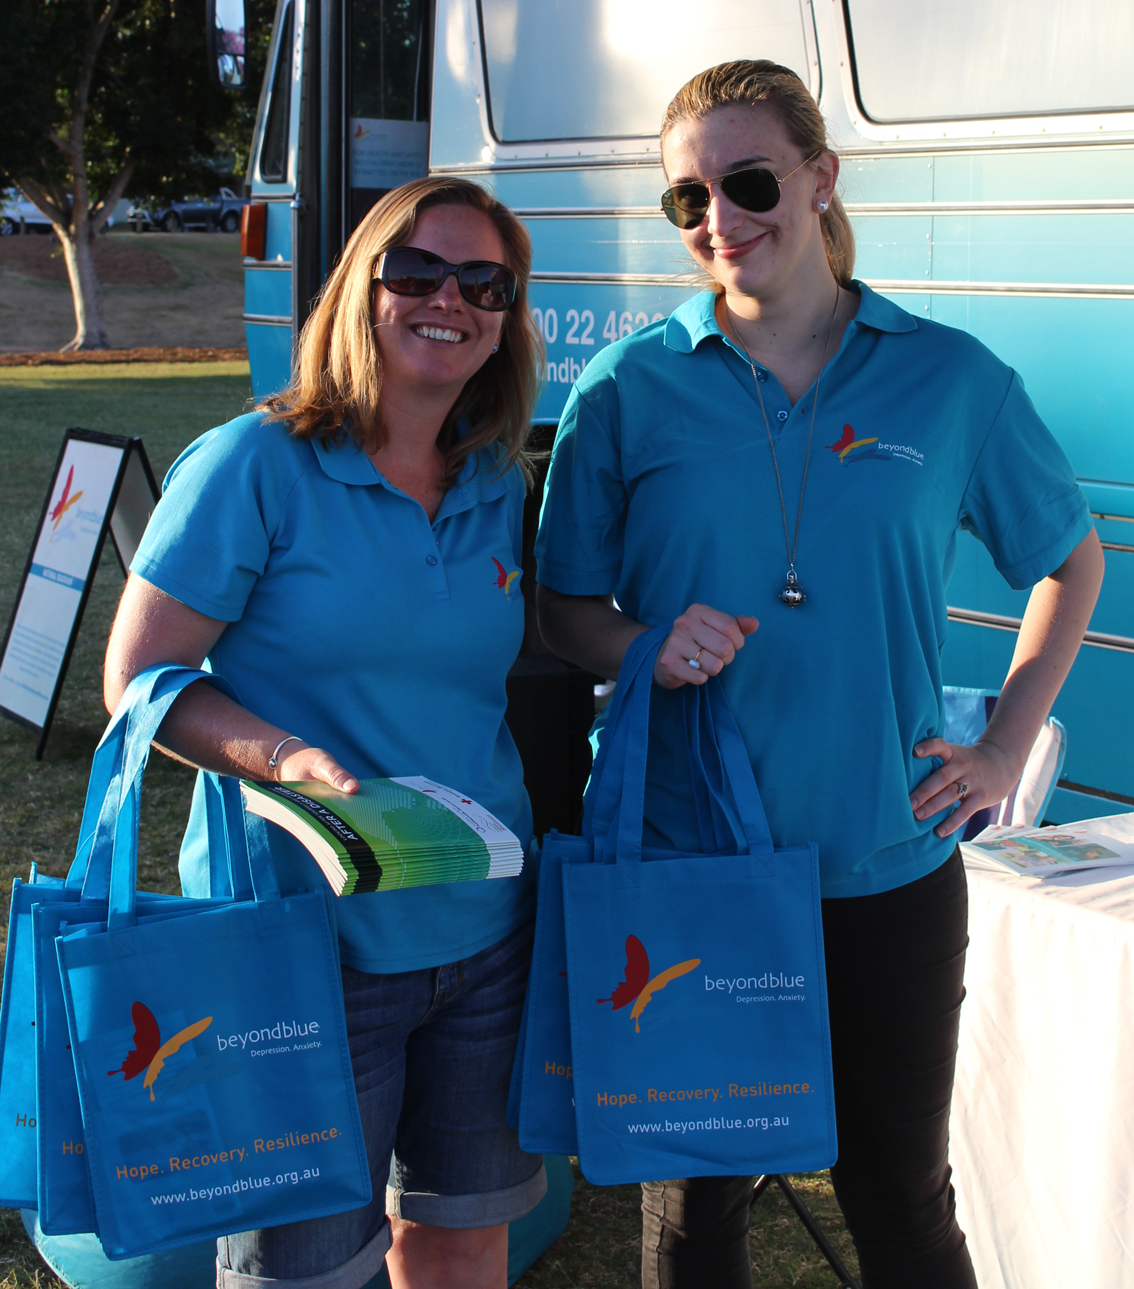 With free Beyond Blue showbags at the Jacaranda Festival in Goodna.